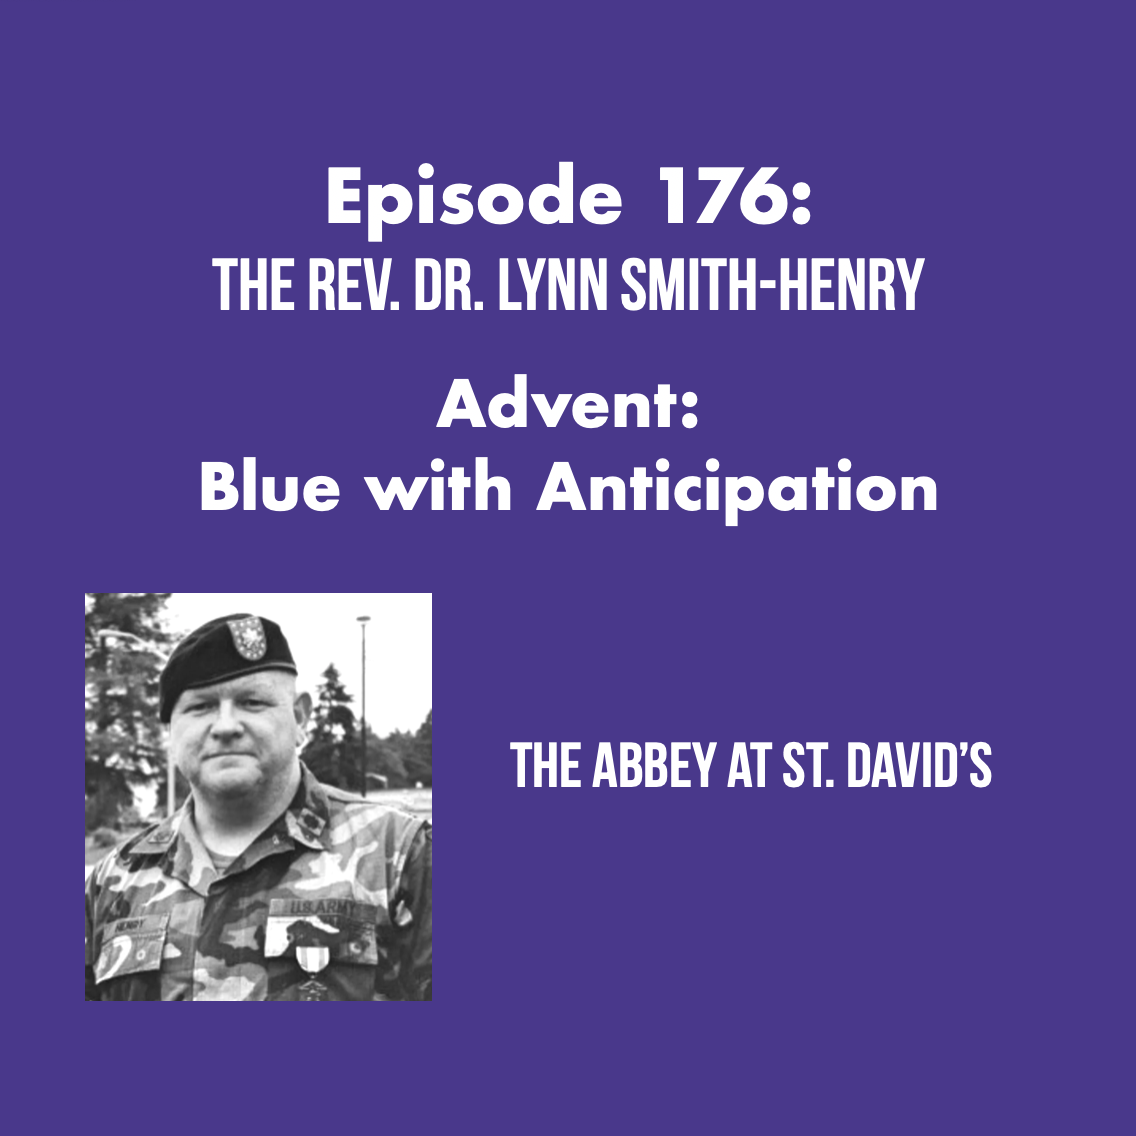 Episode 176: Advent: Blue with Anticipation with The Rev. Dr. Lynn Smith-Henry